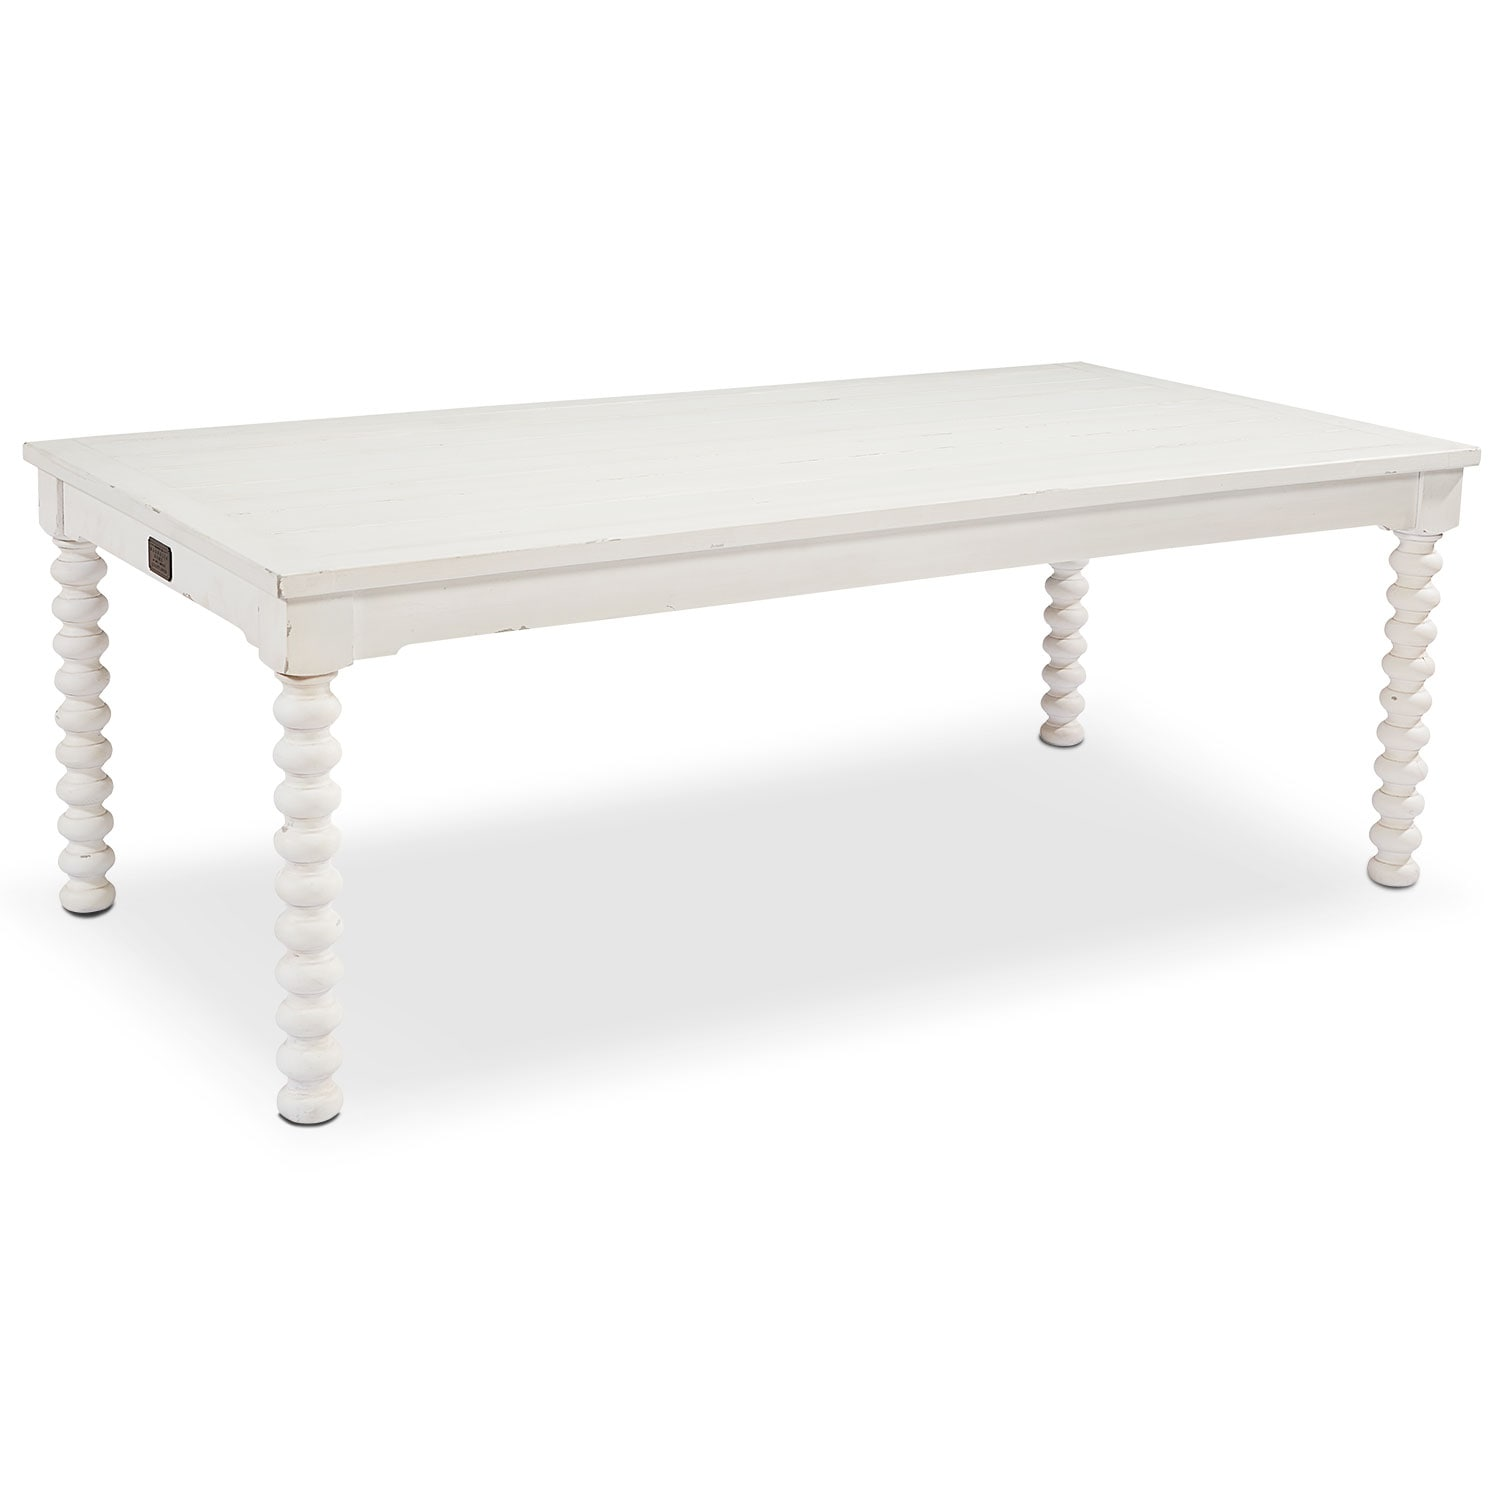 Dining Room Furniture - 6' Spool Leg Dining Table - White